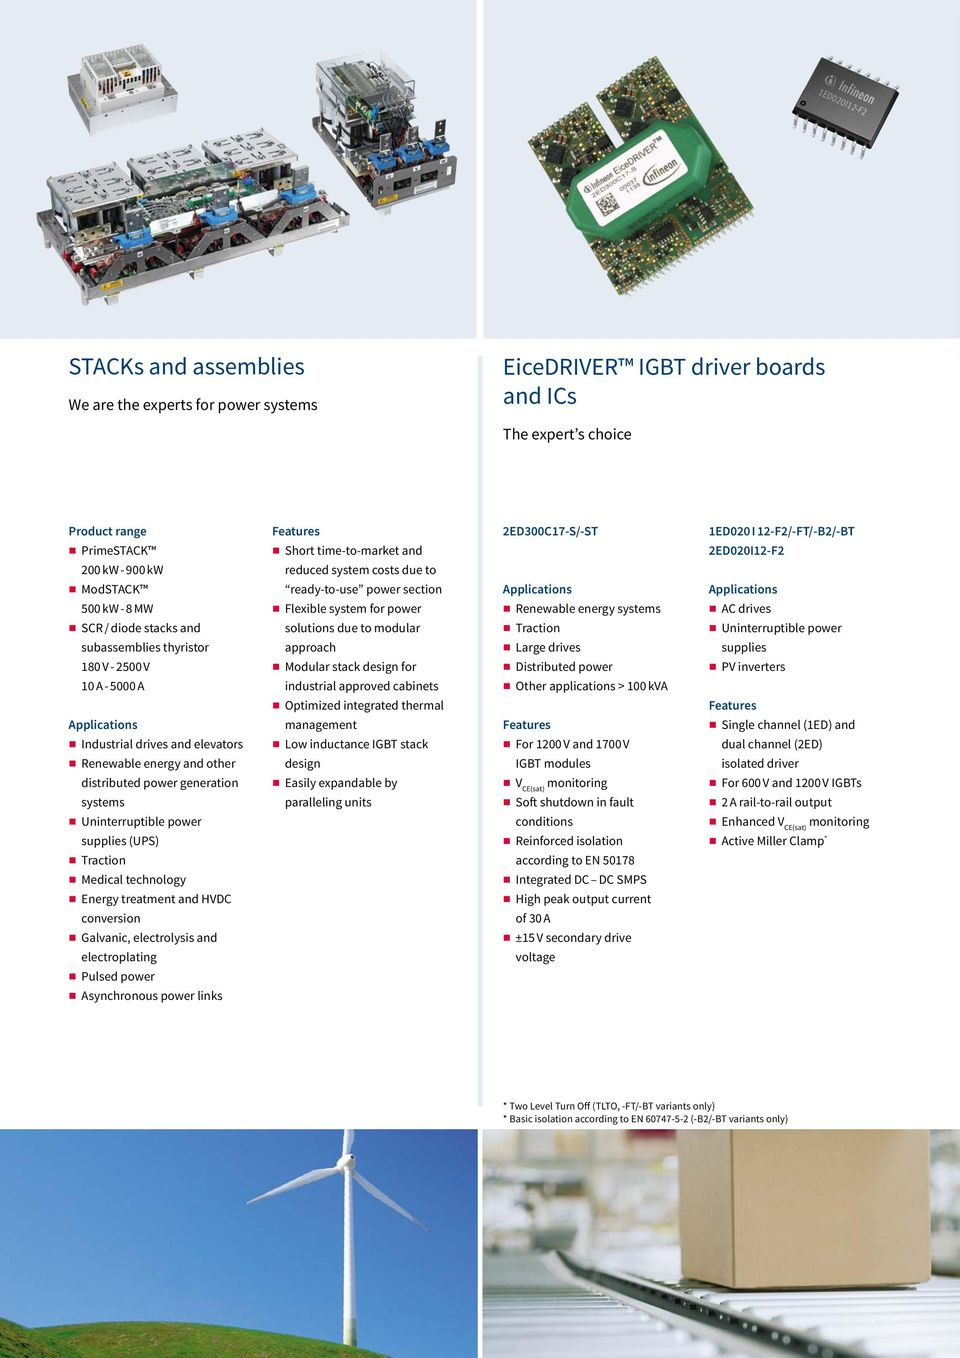 to modular Tractio Uiterruptible power subassemblies thyristor approach Large drives supplies 180 V - 2500 V Modular stack desig for Distributed power PV iverters 10 A - 5000 A idustrial approved